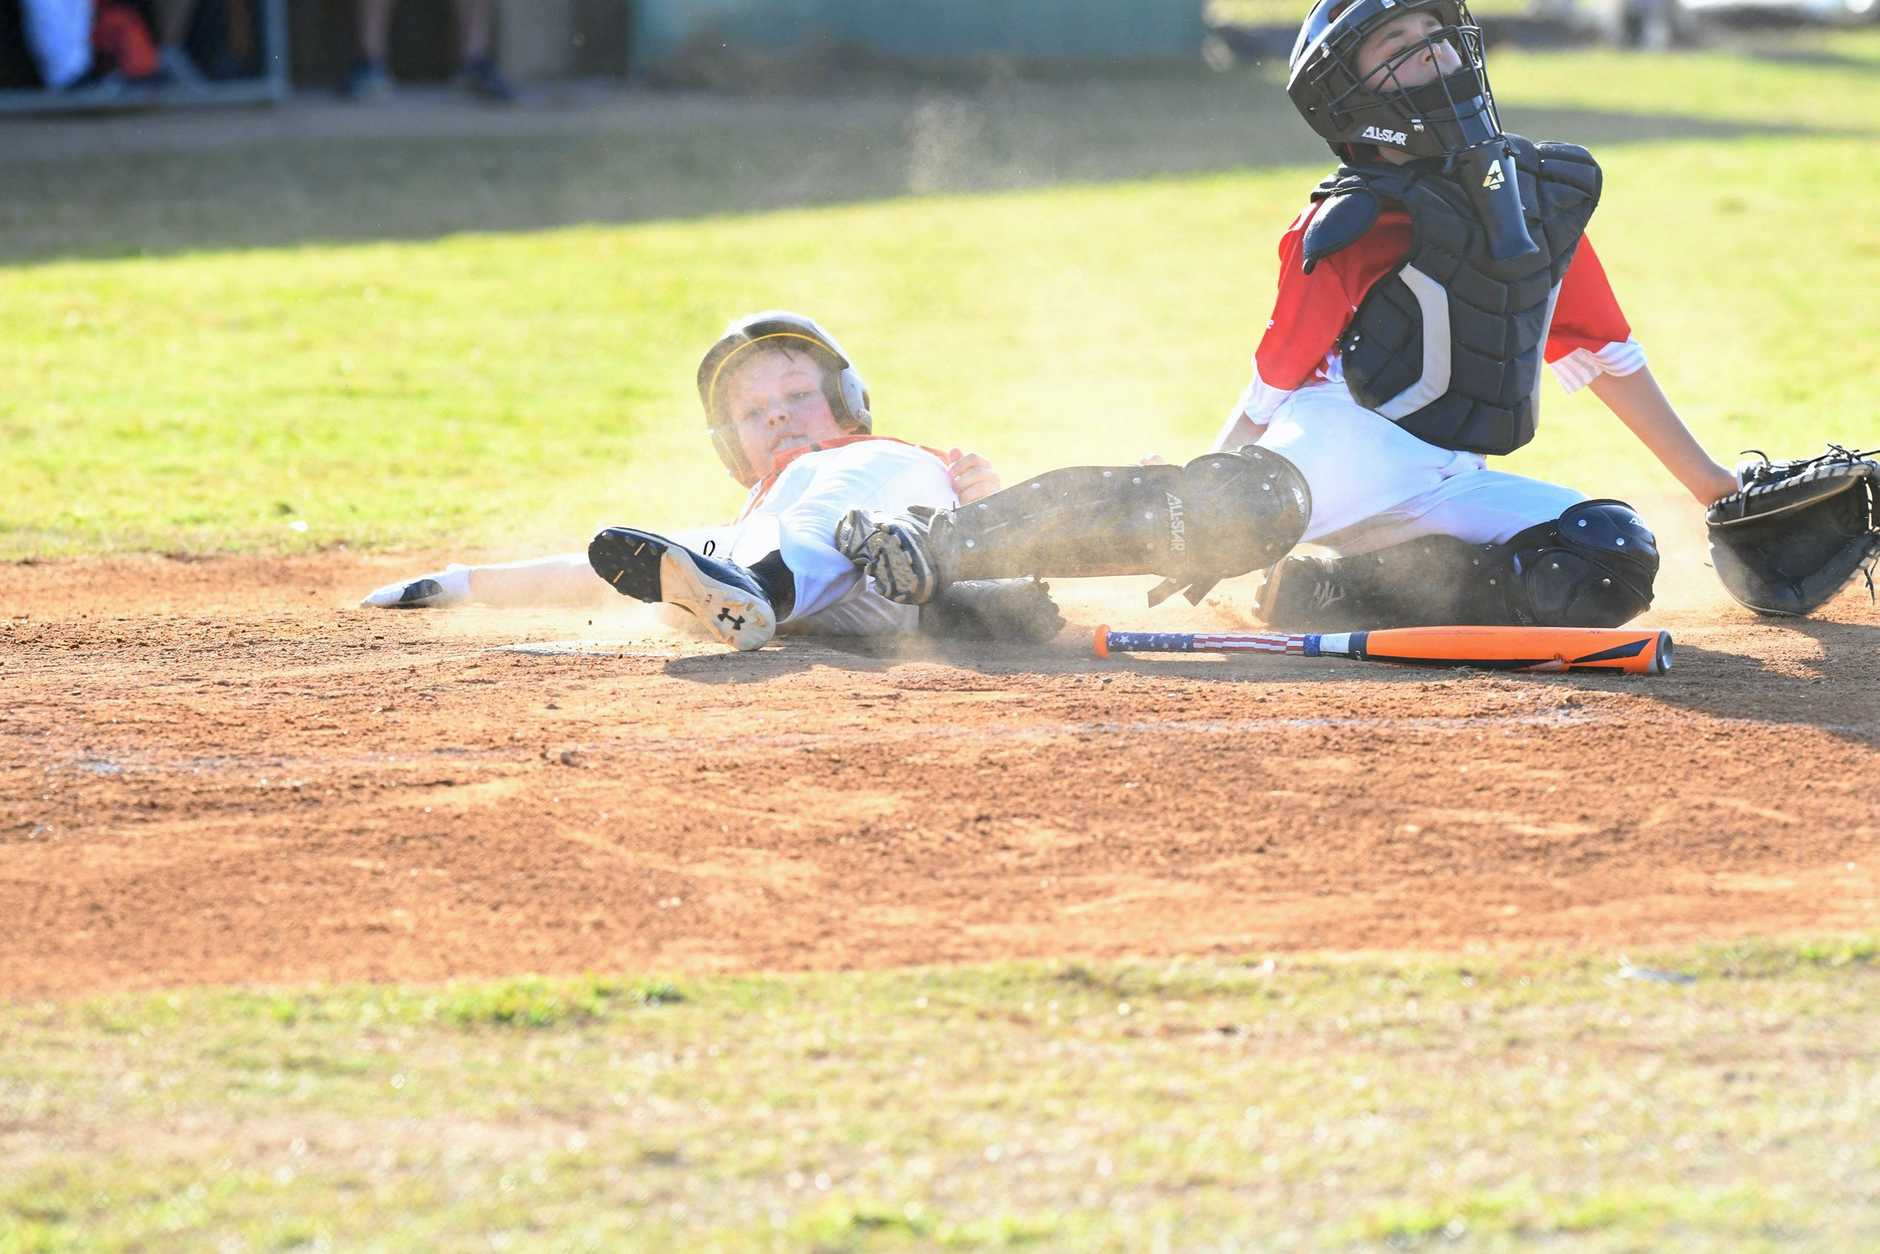 Canberra player Harry Austin slides in during the game against Northern Metros at the Australian Little League Baseball Championship.